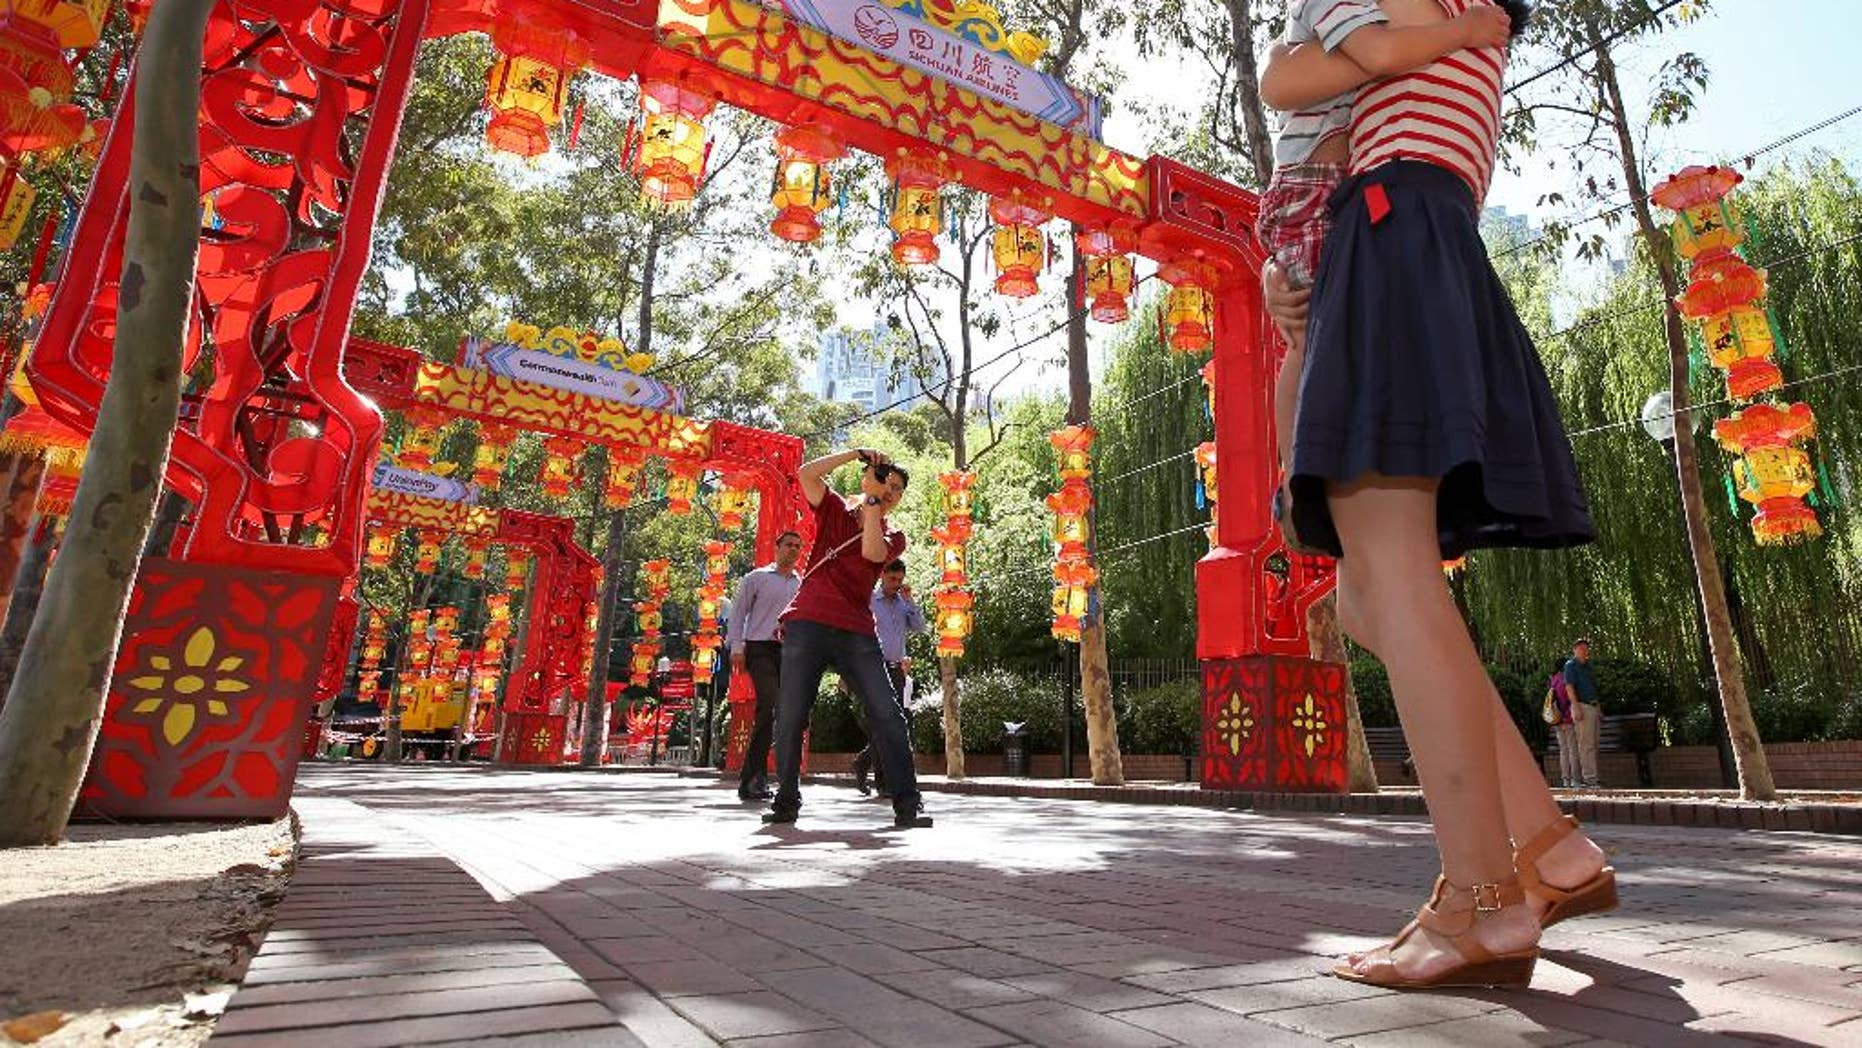 """In this photo taken on Wednesday, Feb. 18, 2015, Pen Pu, center, photographs his wife Chelsea Peng, right, and their three-year-old son Dore Peng, amongst a colorful display of arches and lanterns near the Chinese Garden of Friendship in Sydney, Australia. The gardens, conceived by Chinese landscape artists in consultation with the local Chinese community, are a popular destination for tourists and residents and is located next to the Chinatown district in Sydney.  Pu, 35, who is Chinese but a permanent resident of Australia, says that for the coming New Year he has hopes that """"our country will be peaceful and will get stronger and my family will be happy and healthy."""" (AP Photo/Rick Rycroft)"""